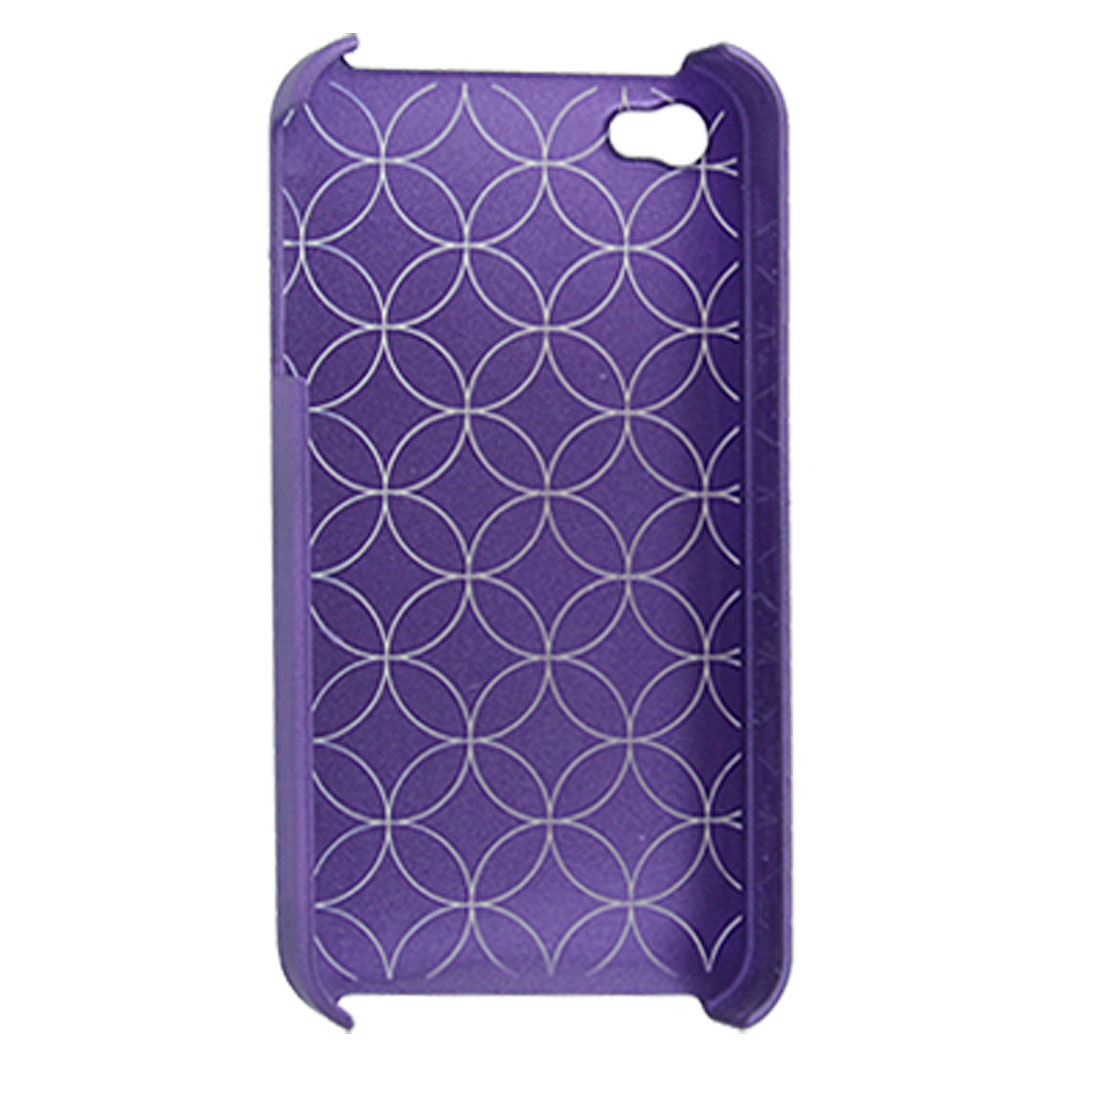 Purple Geometric Pattern Hard Plastic Case for iPhone 4 4G